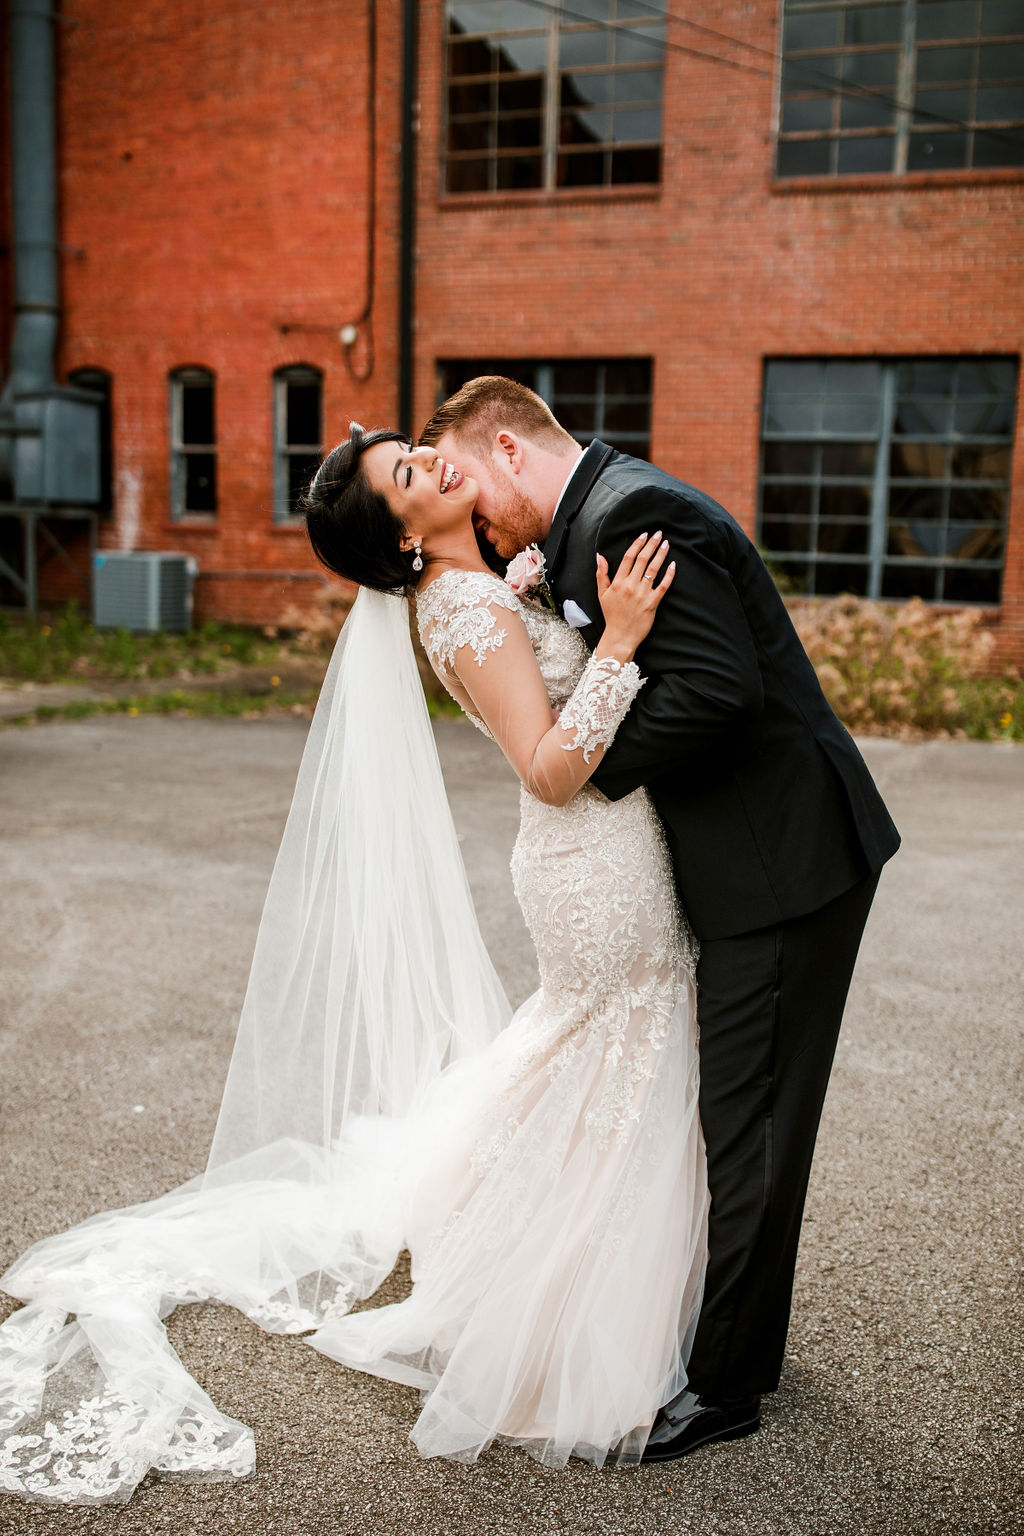 Romantic wedding photos: Wedding at The Mill captured by John Myers Photography featured on Nashville Bride Guide